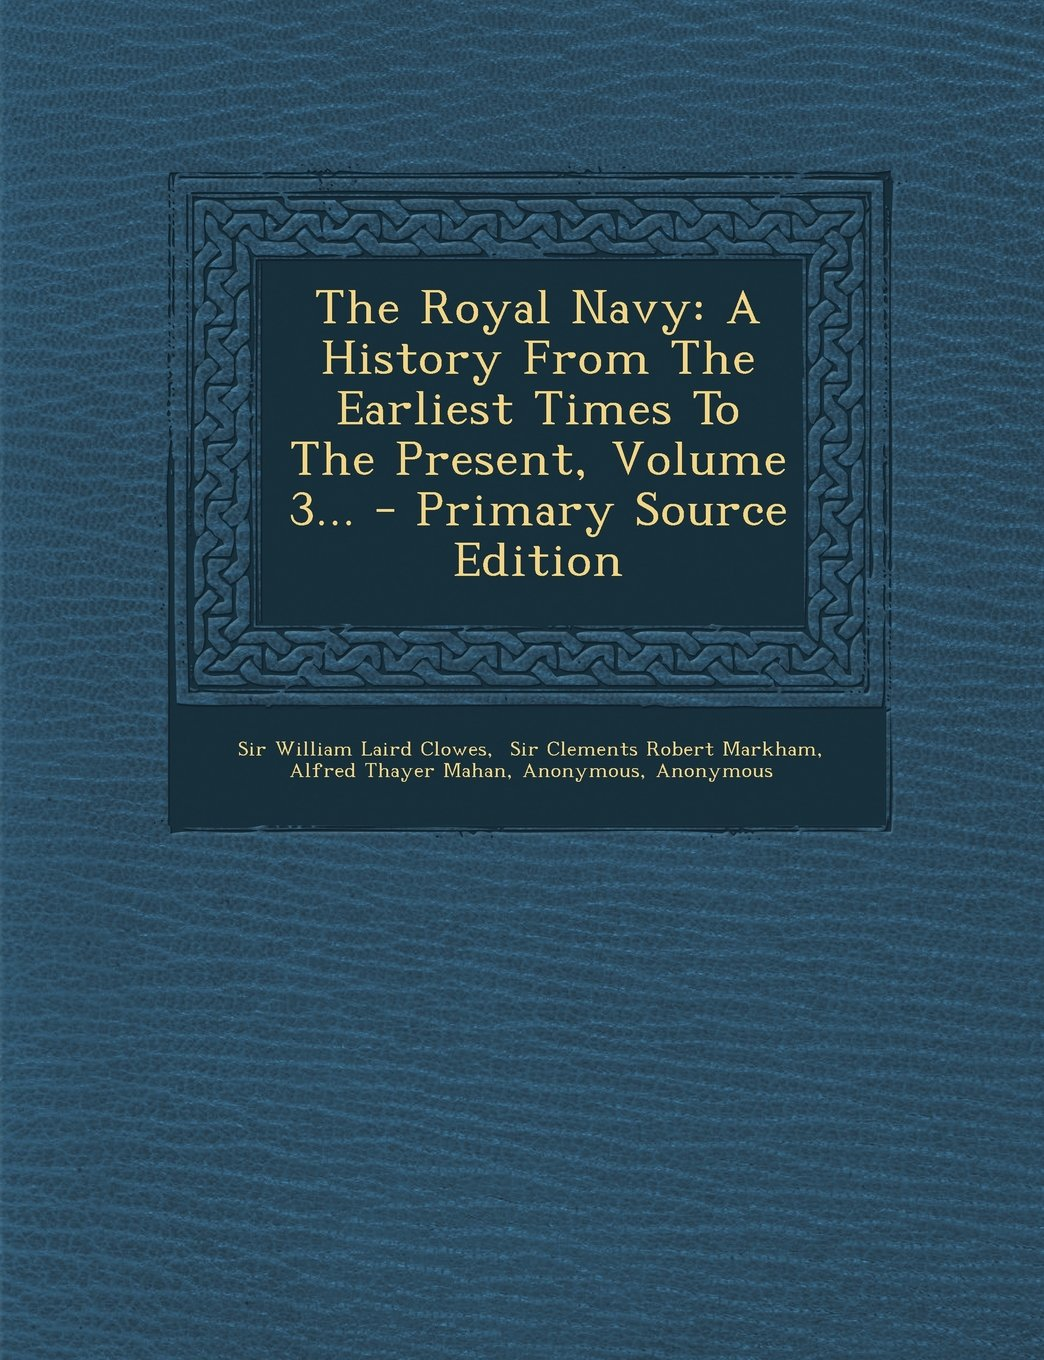 Download The Royal Navy: A History from the Earliest Times to the Present, Volume 3... - Primary Source Edition pdf